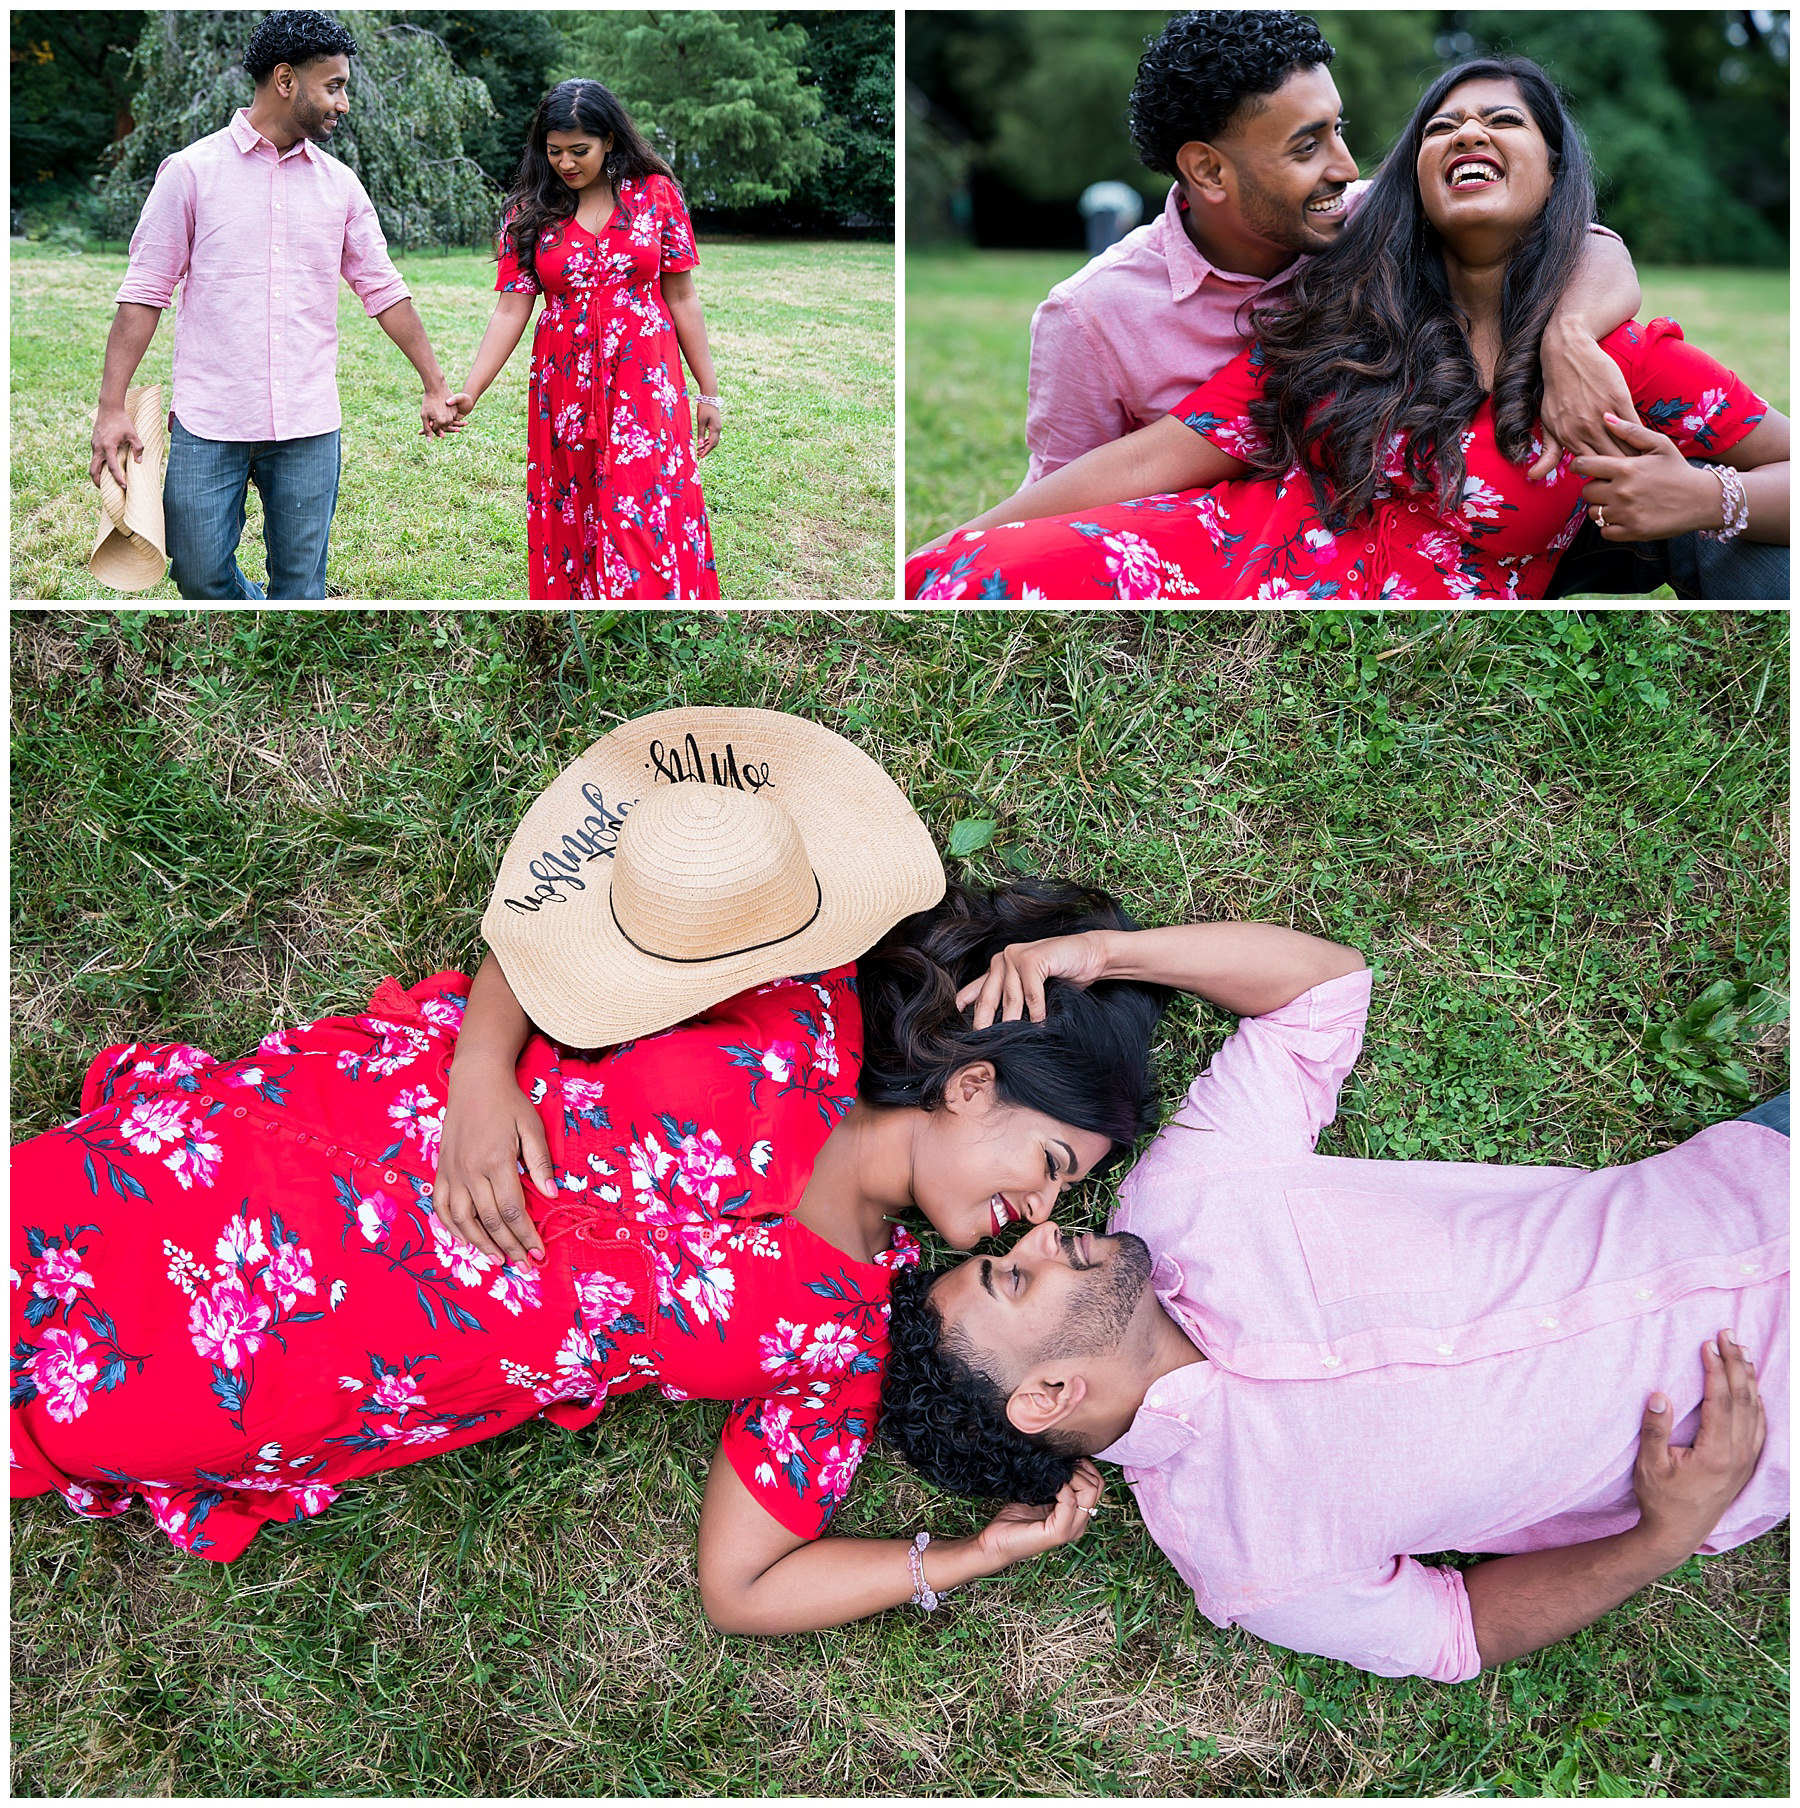 fort-tysons-park-new-york-engagement-shoot-sibyl-jithin-20.jpg